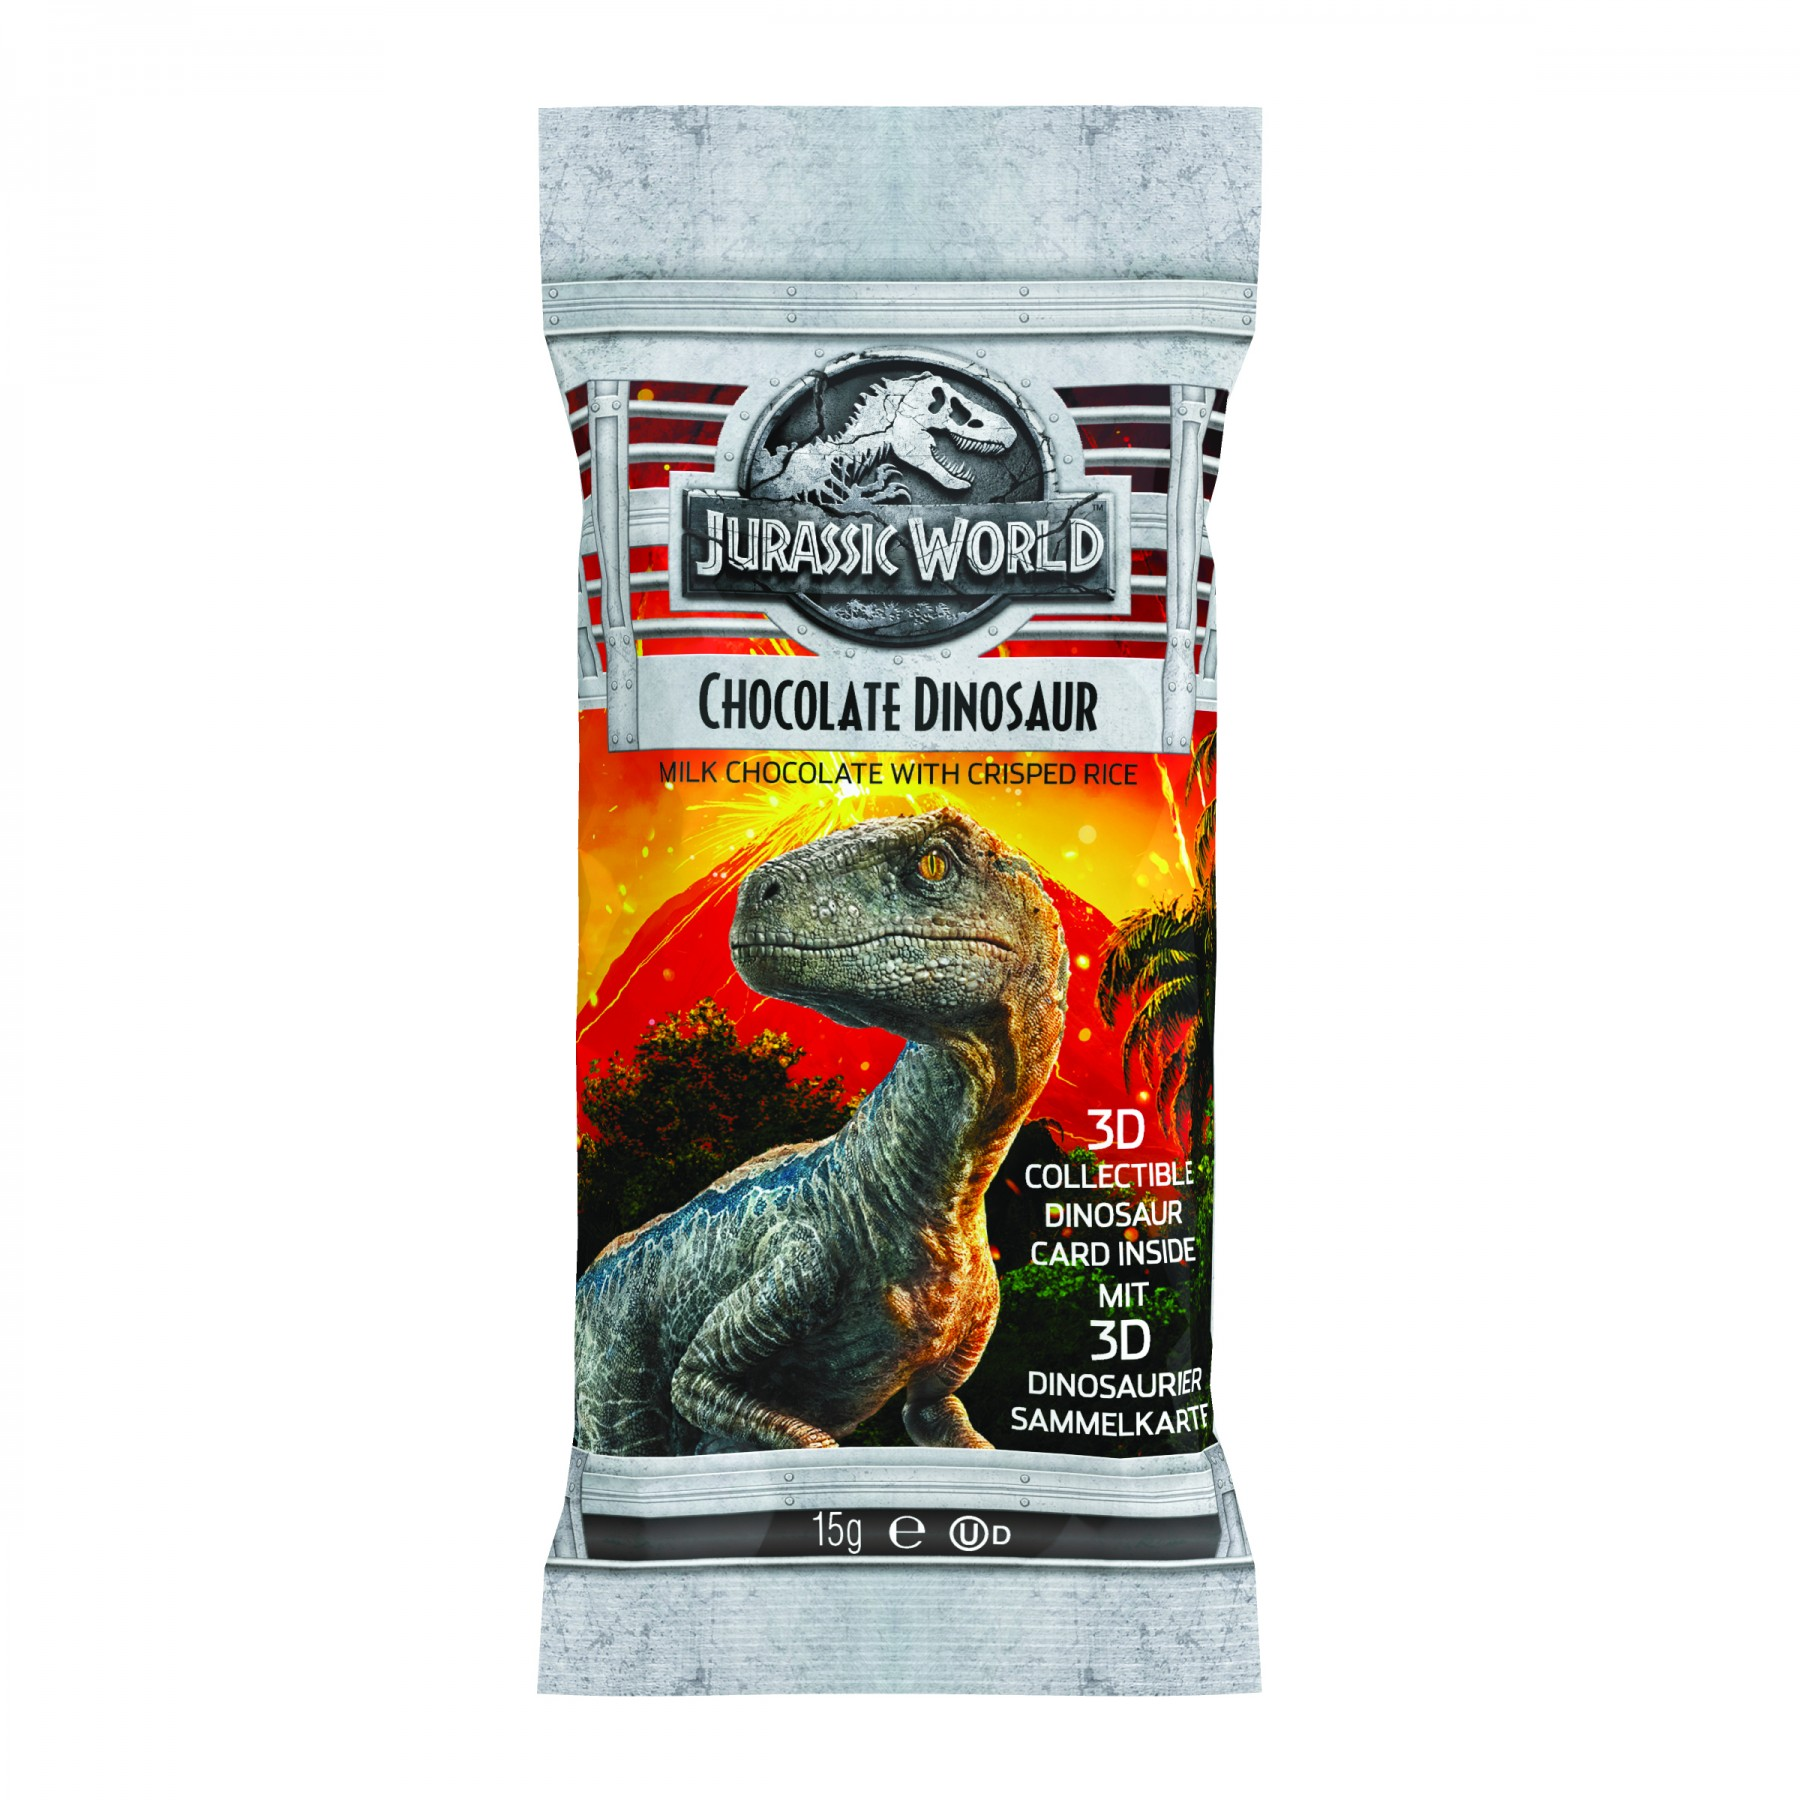 Jurassic World Chocolate Dinosaur with 3D collectable card